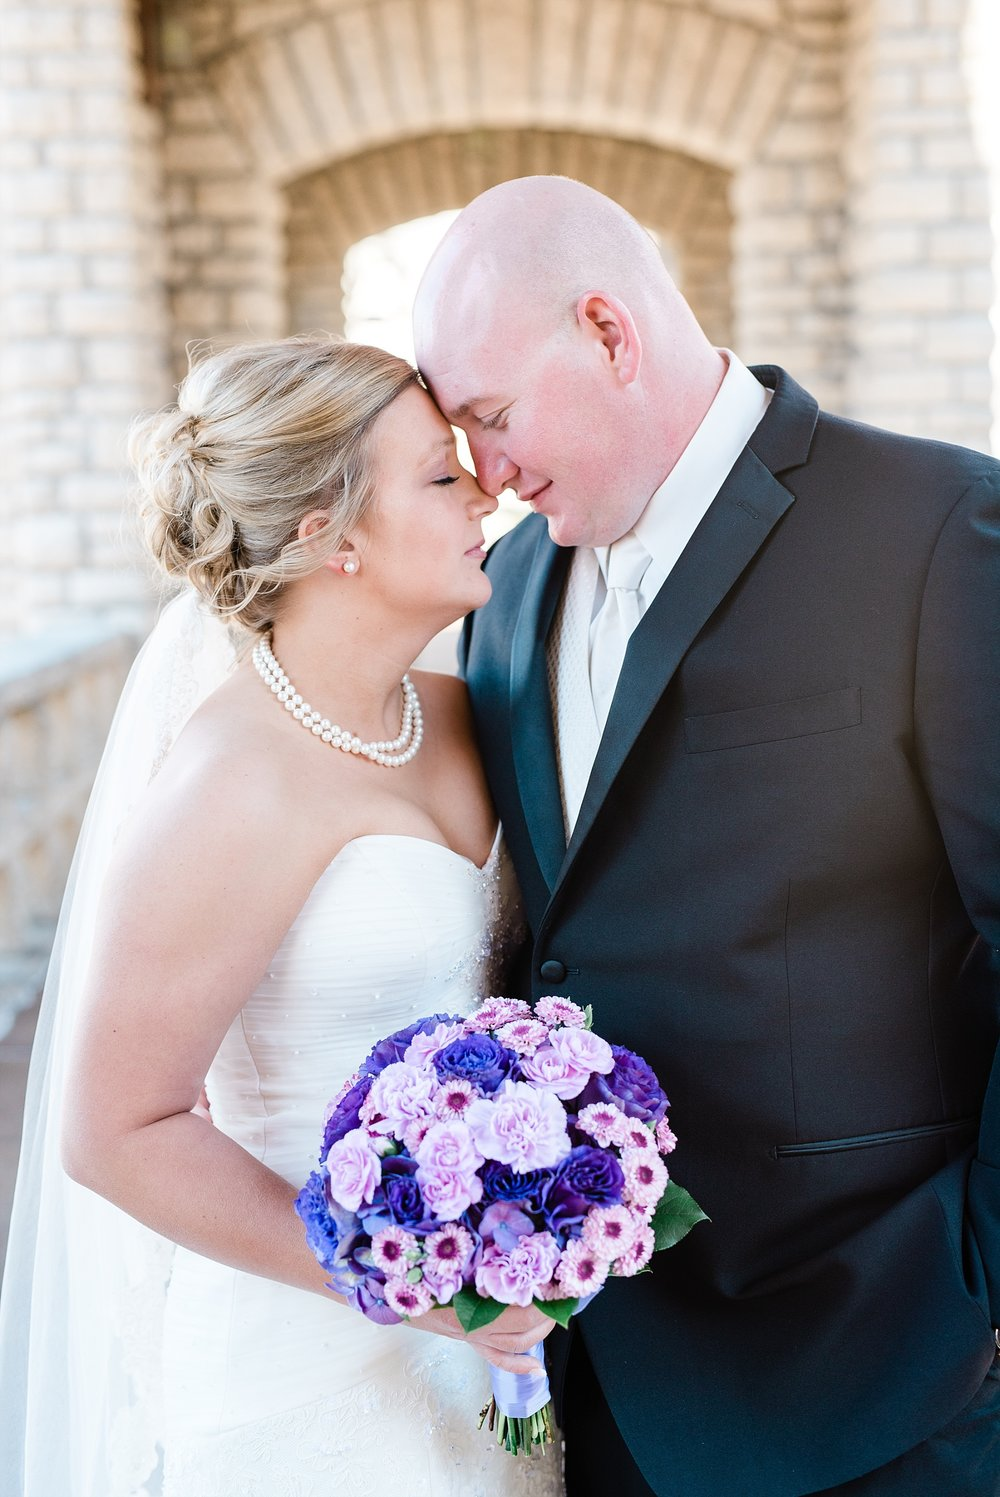 Light and Airy Spring Wedding Downtown Jefferson City Missouri State Capitol Millbottom_0012.jpg